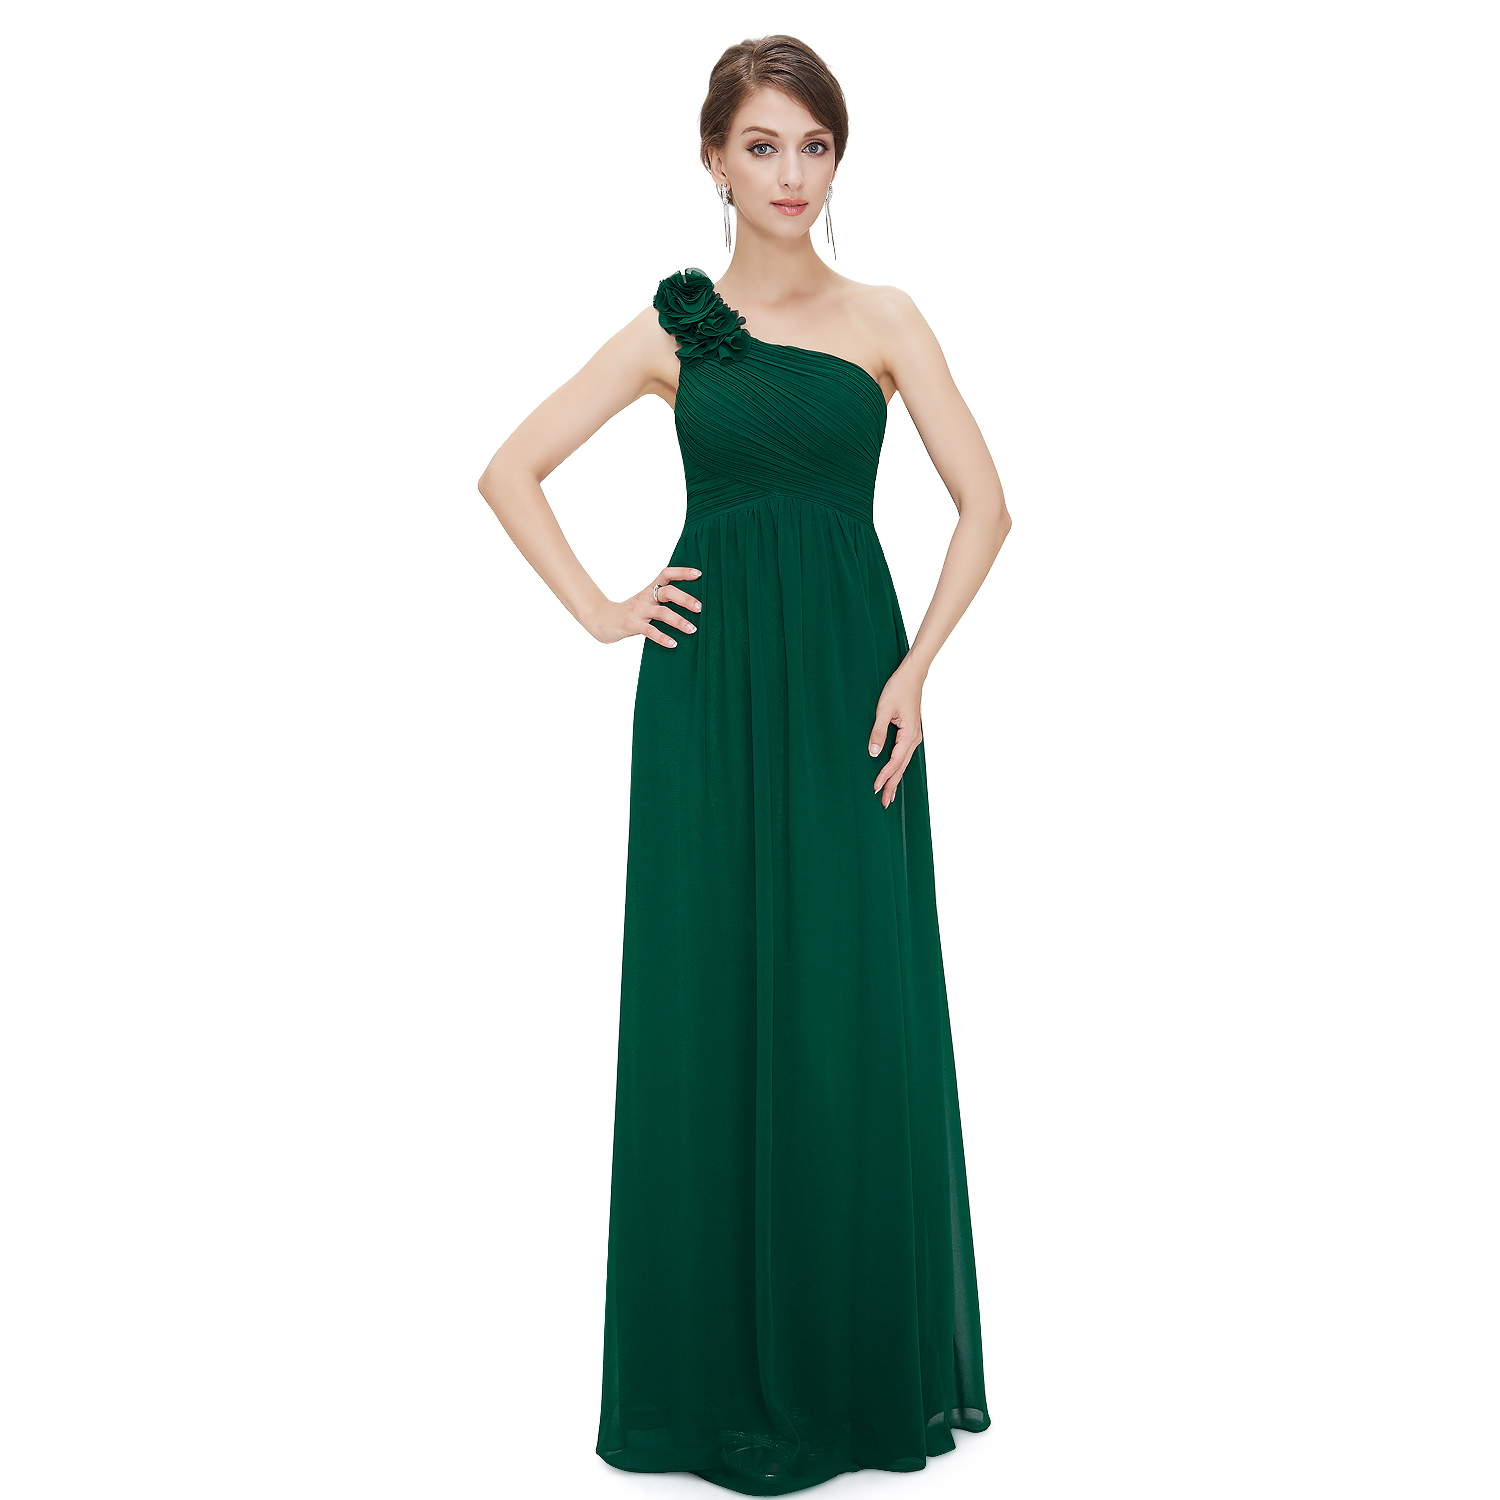 Affordable party dresses for women online at yoins, a great selection of hot sexy party dresses for your choices, update your wardrobe with our fashion ladies party dresses.